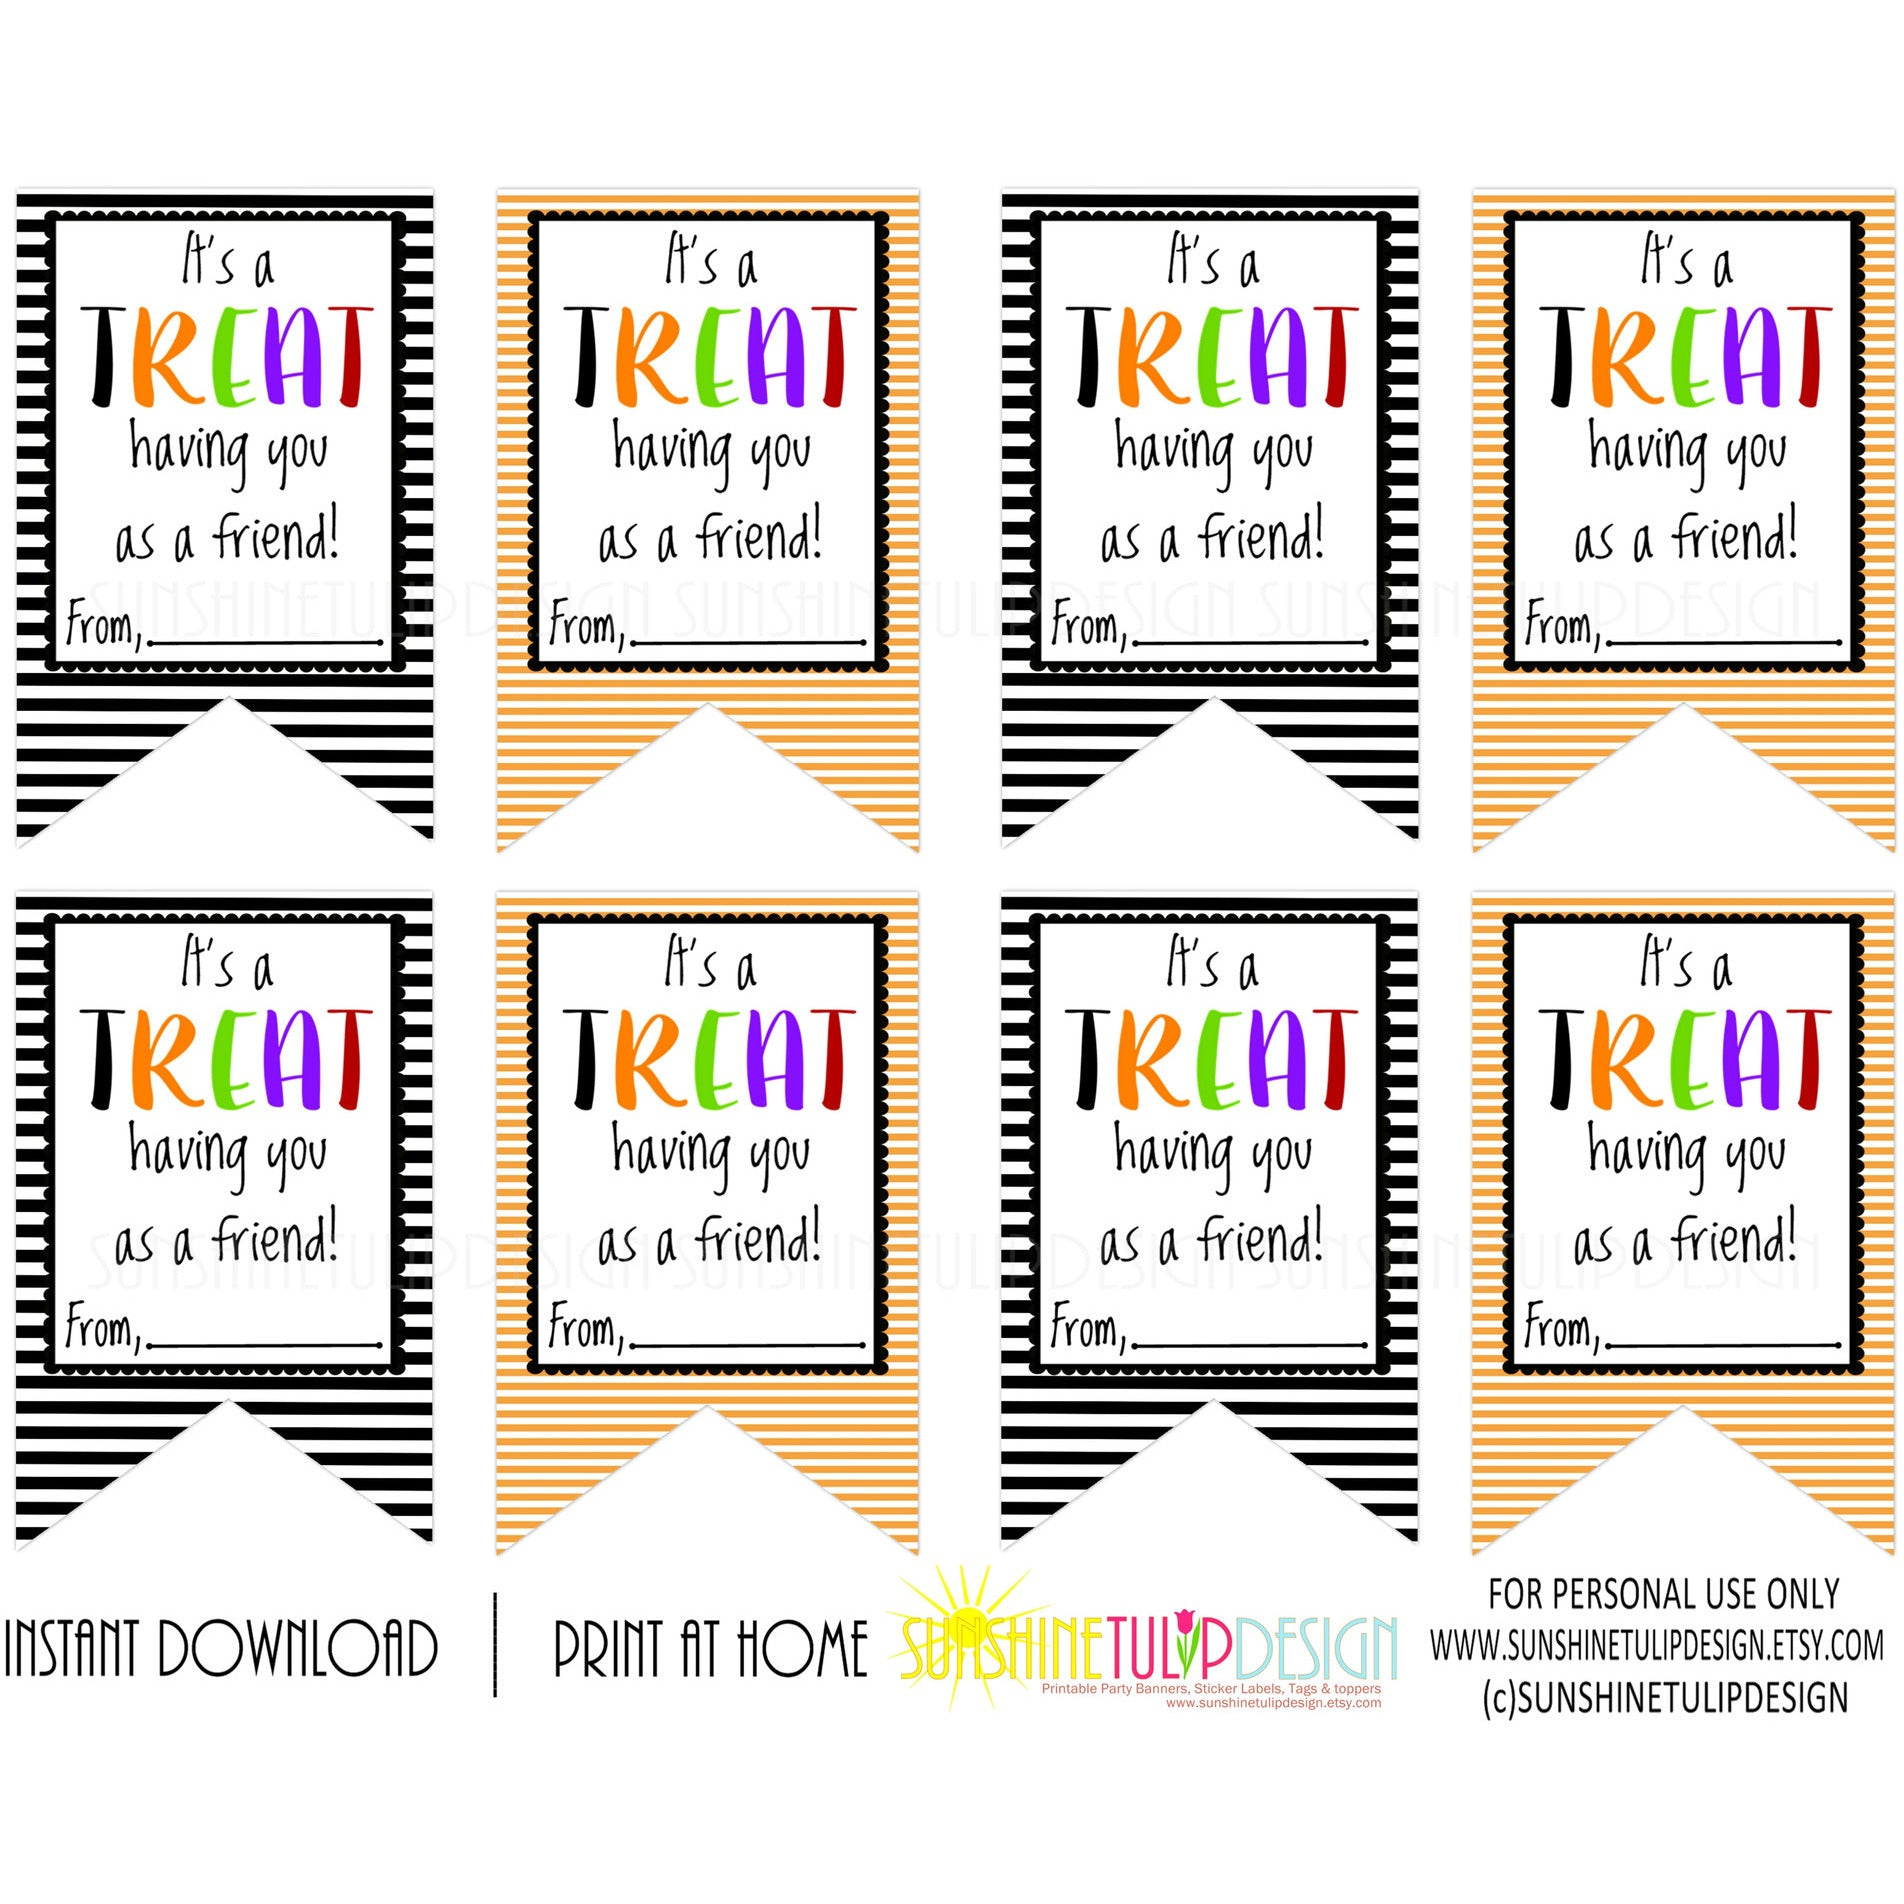 Printable Halloween Gift Tags, It's a TREAT Having You as a Friend ...